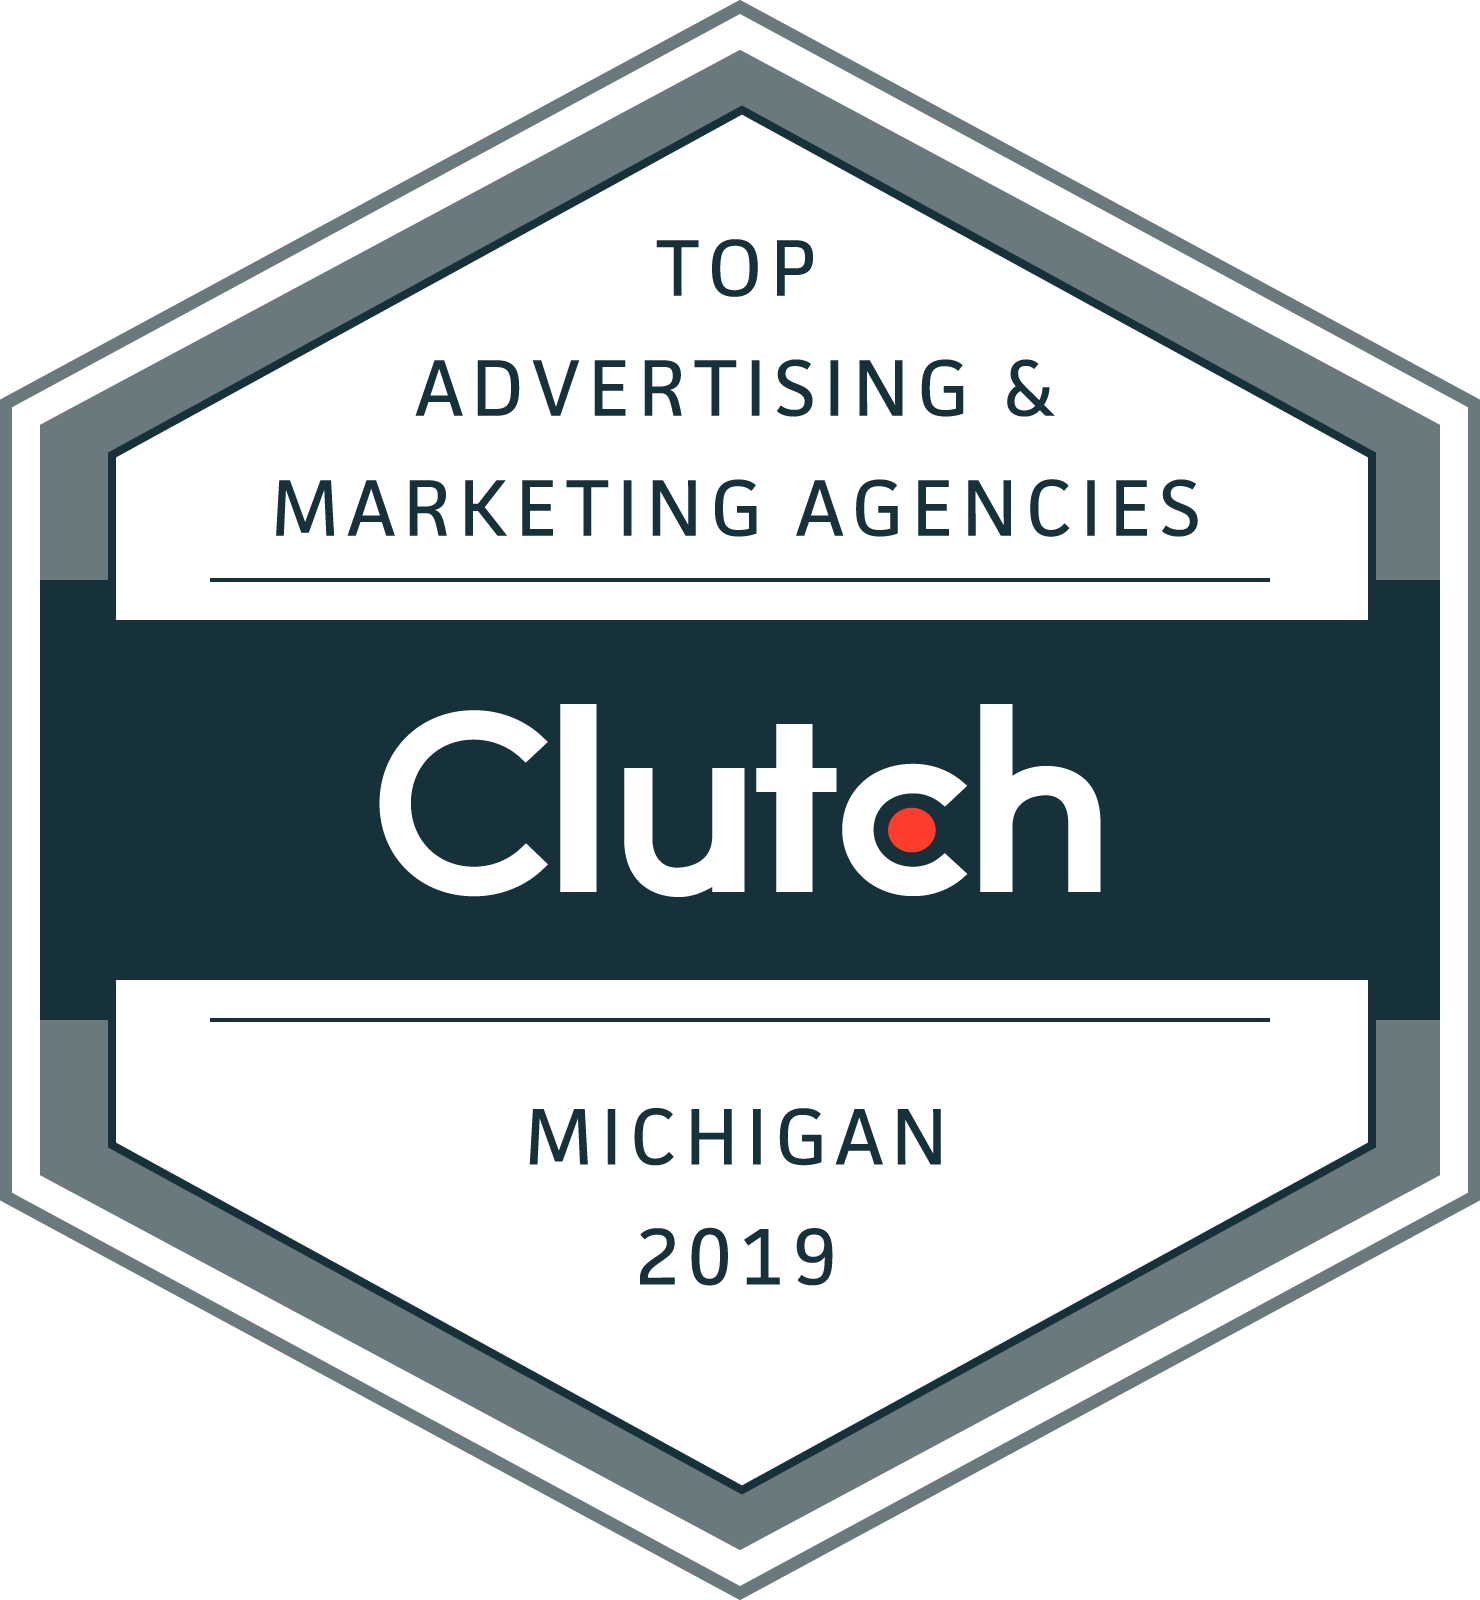 KARMA jack digital marketing named top marketing and advertising agency award, Michigan marketing company, advertising, social media